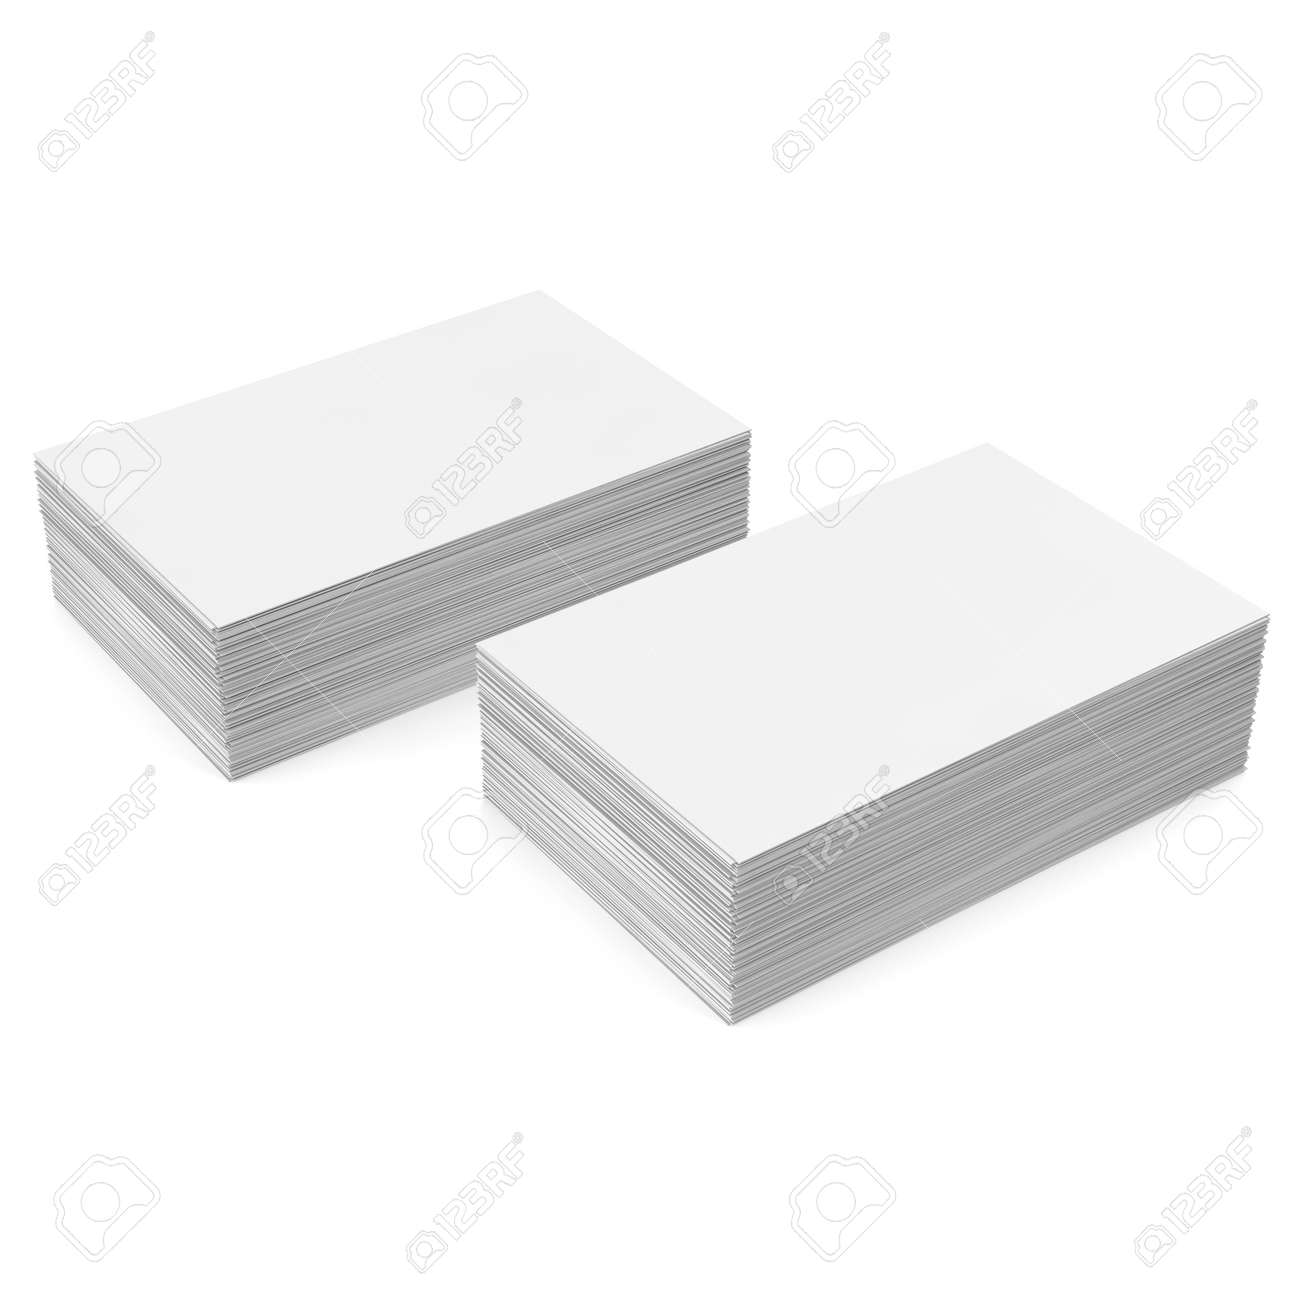 Stack white business card mockup on white background 3d illustration stack white business card mockup on white background 3d illustration colourmoves